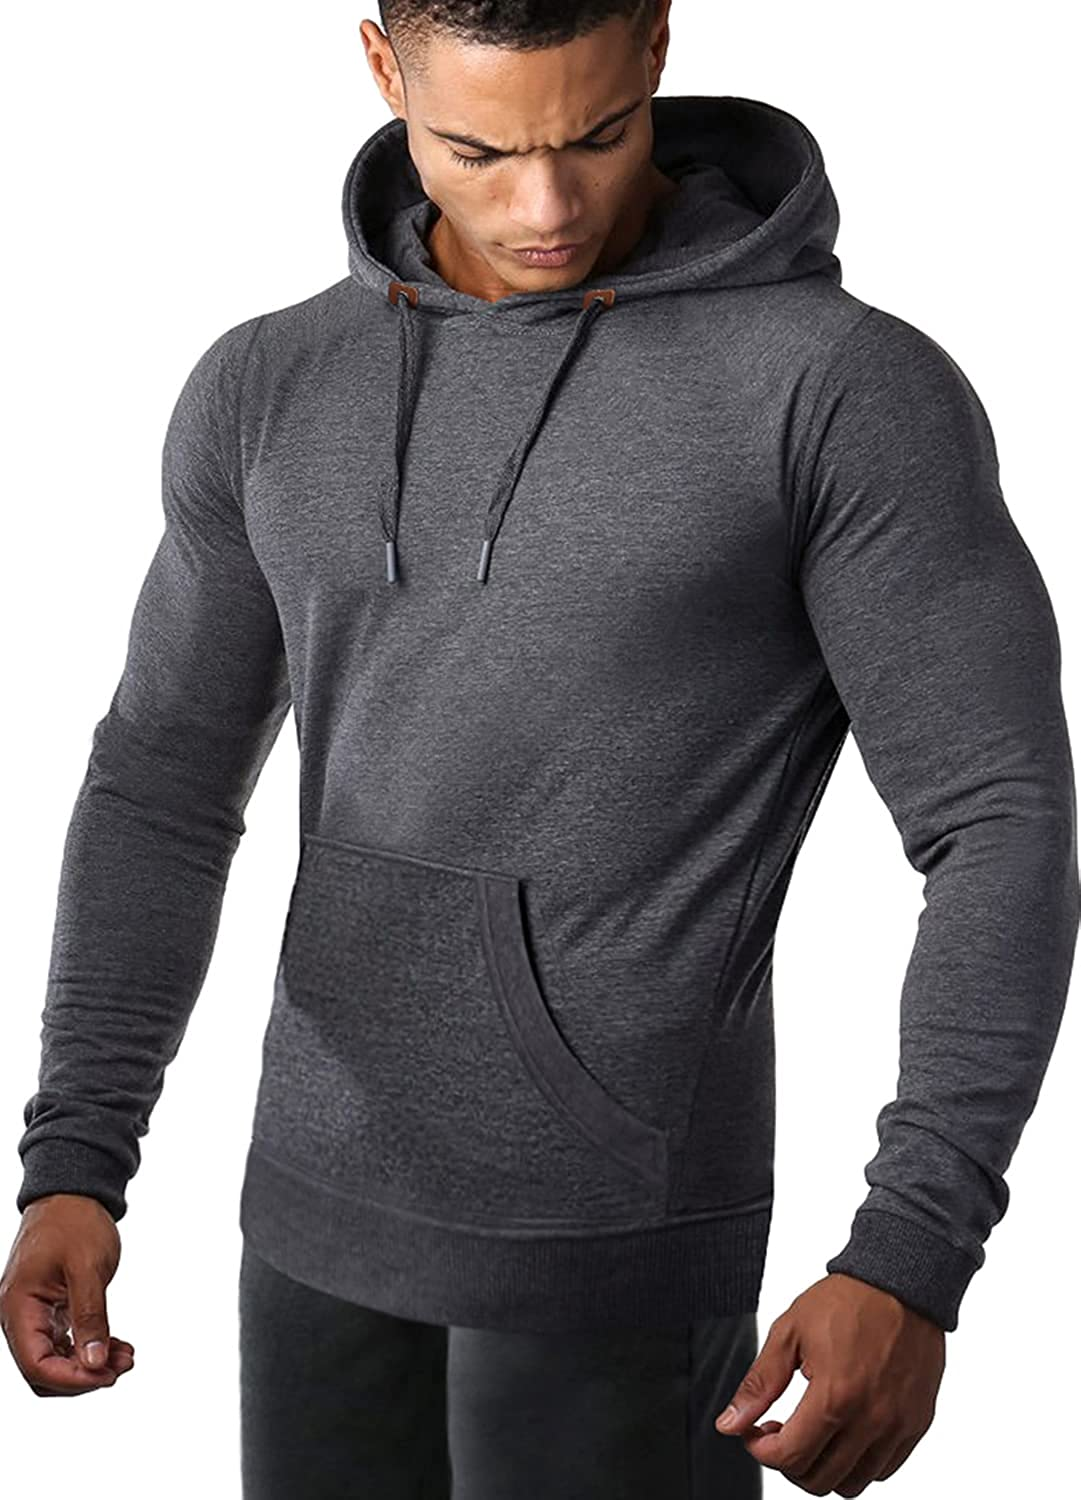 COOFANDY Men's Athletic Hoodie Max 84% OFF Indianapolis Mall Long Pul Sports Drawstring Sleeve